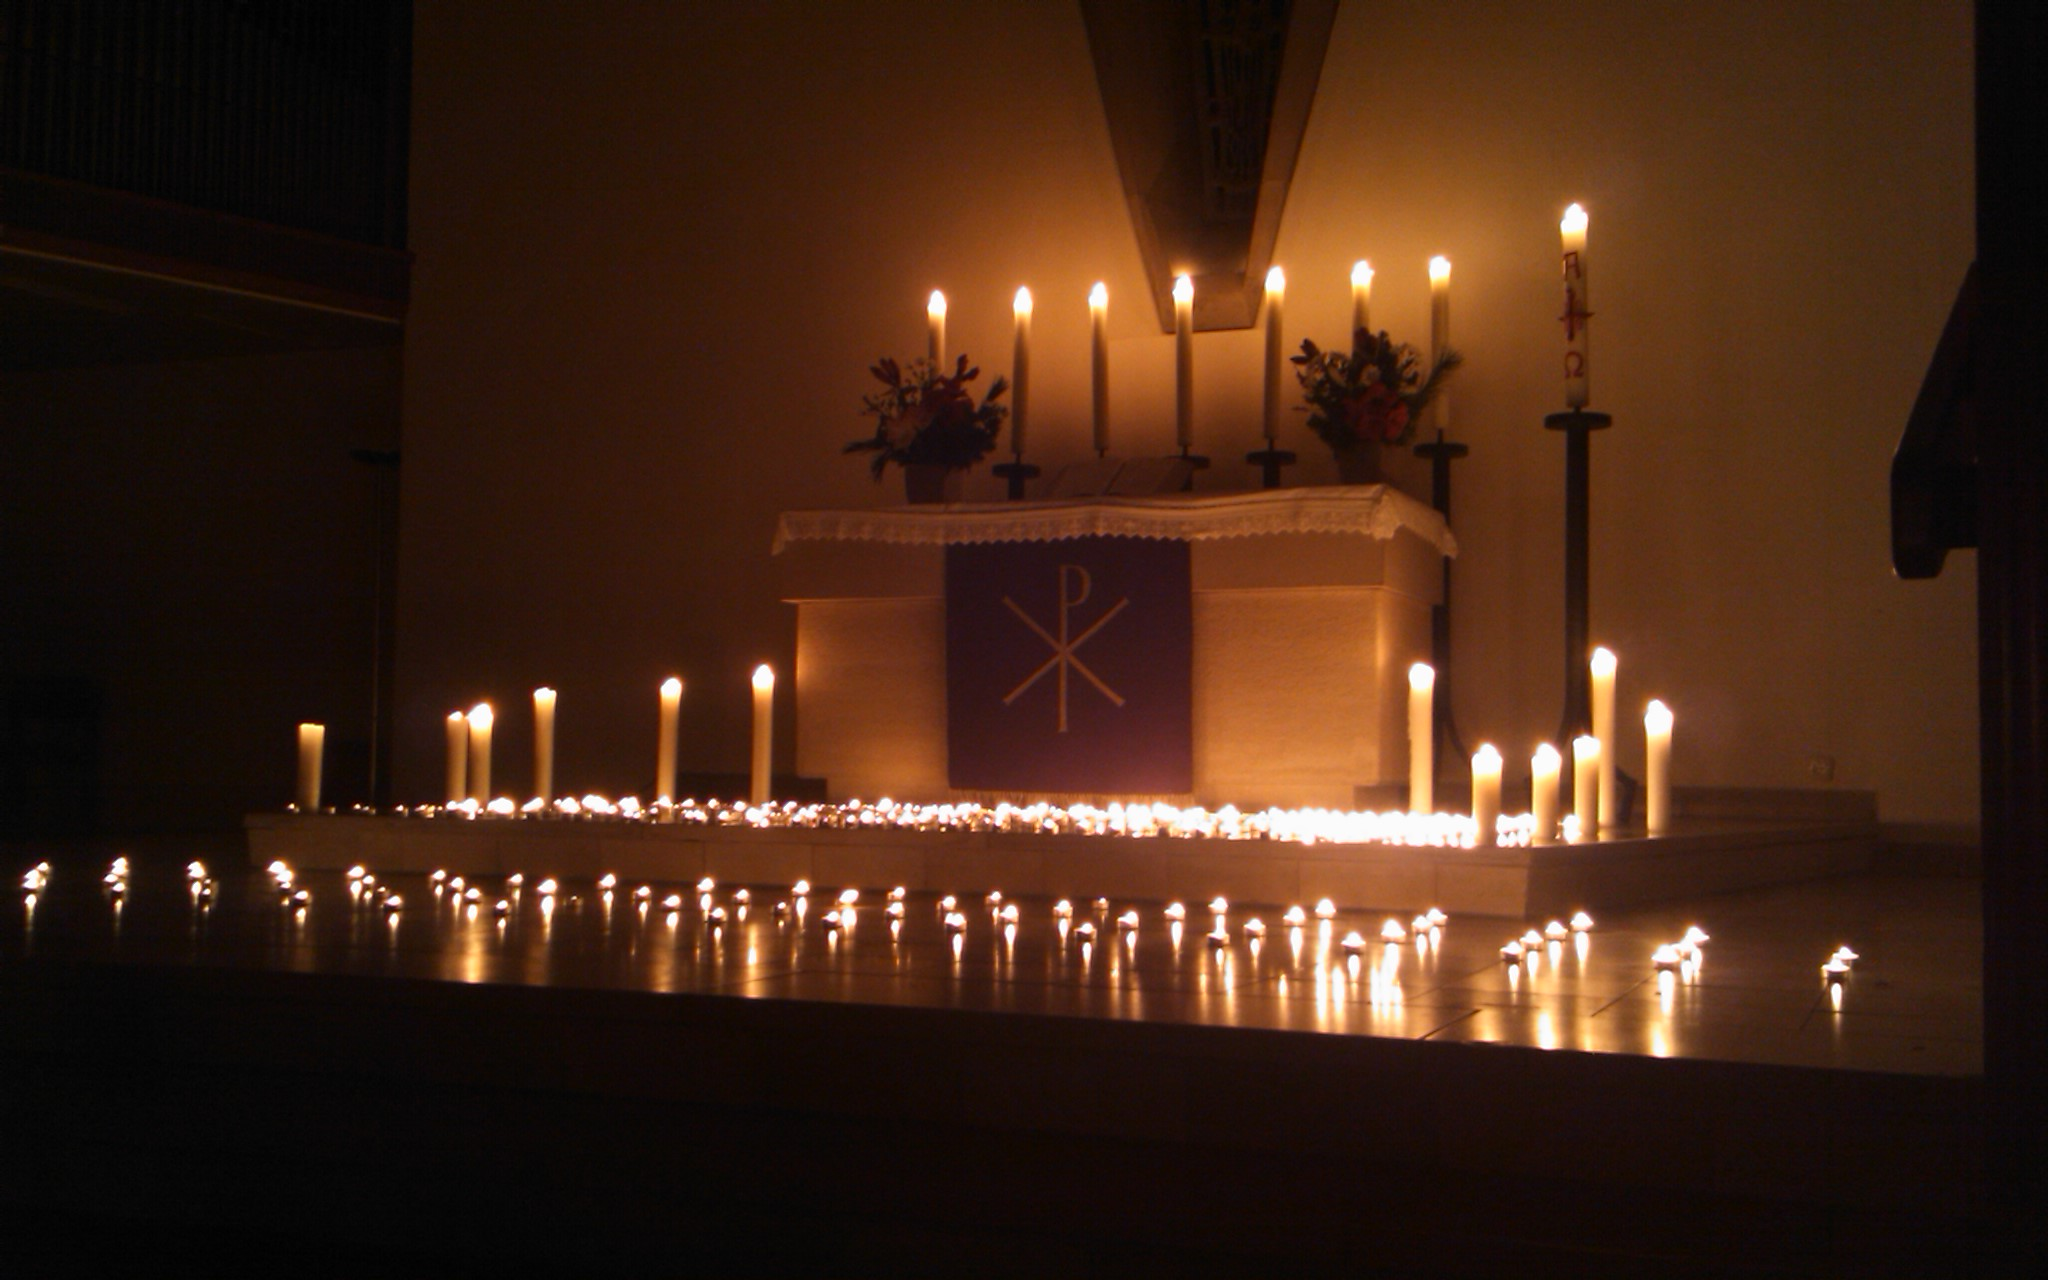 Gottesdienst-Taize-Andacht-01.jpg